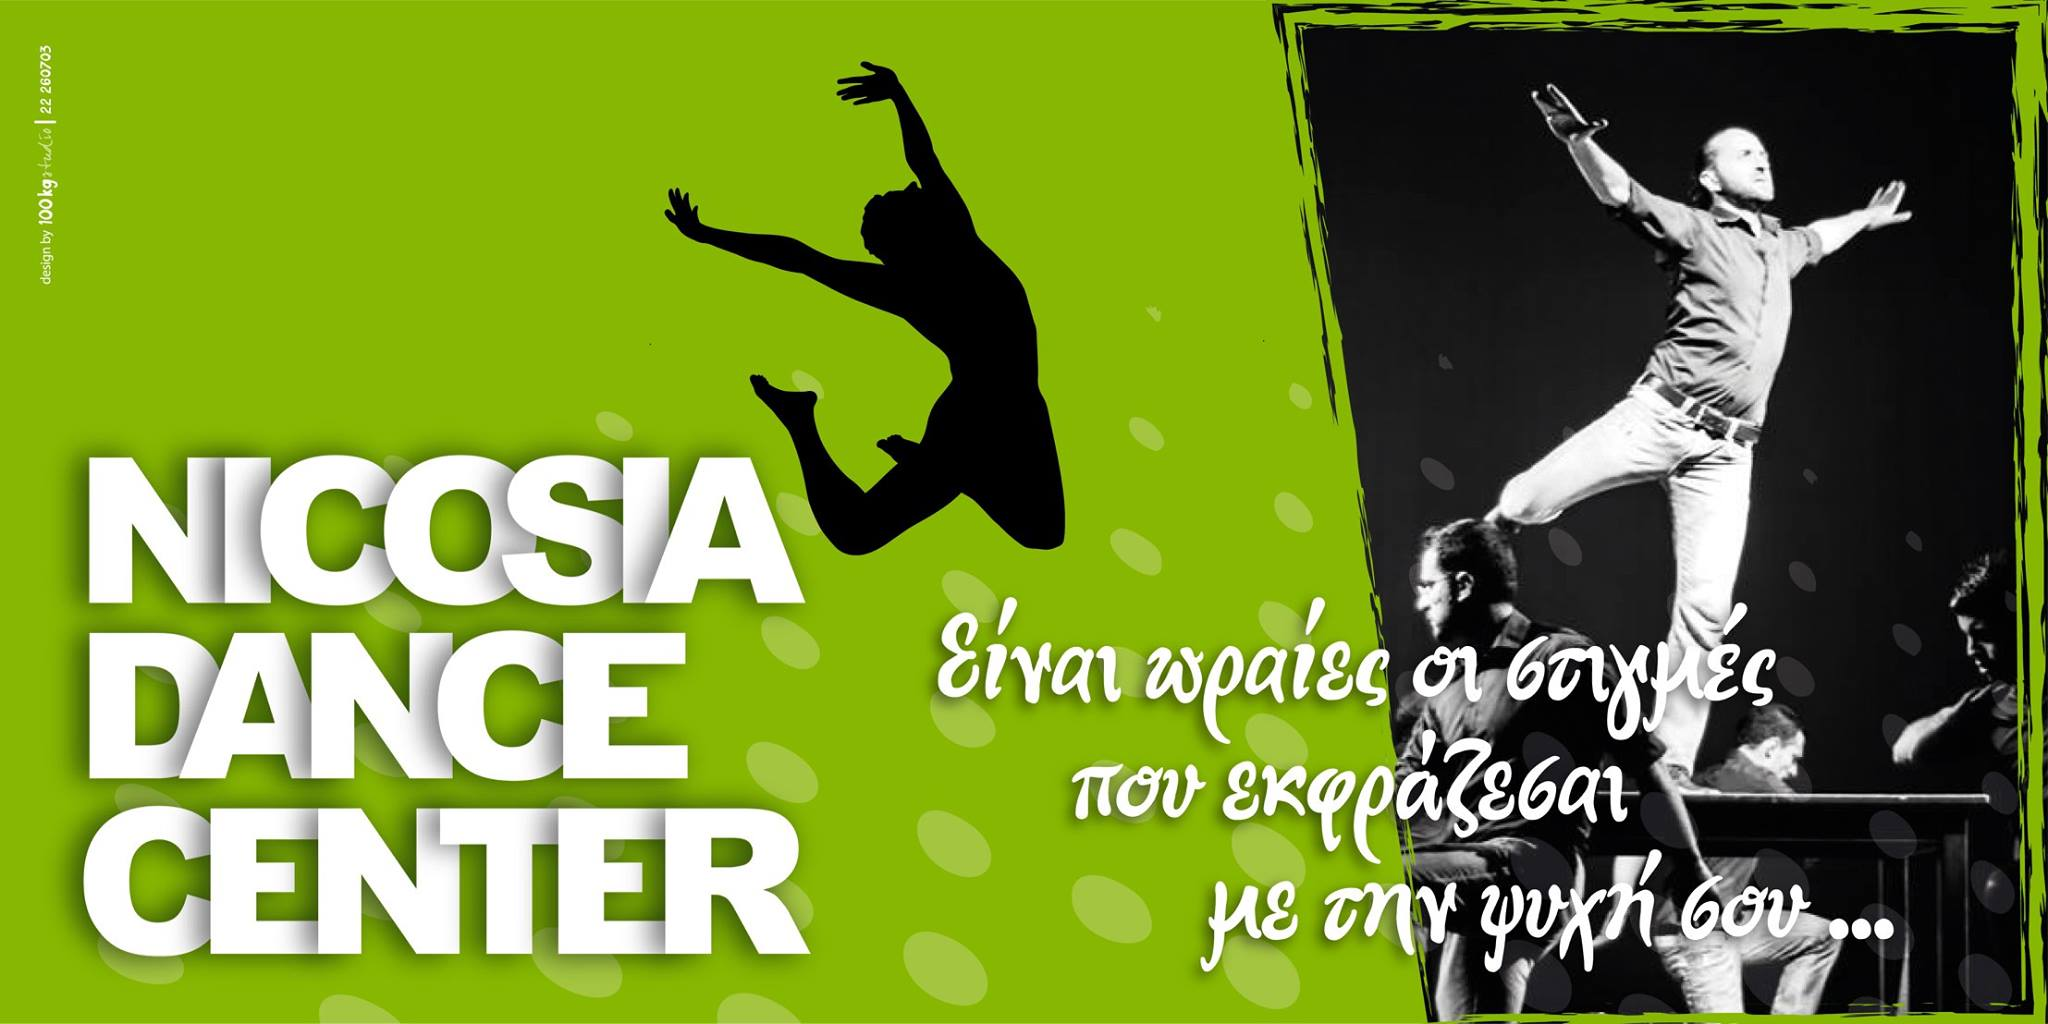 NDC NICOSIA DANCE CENTER Cover Image on XploreCyprus